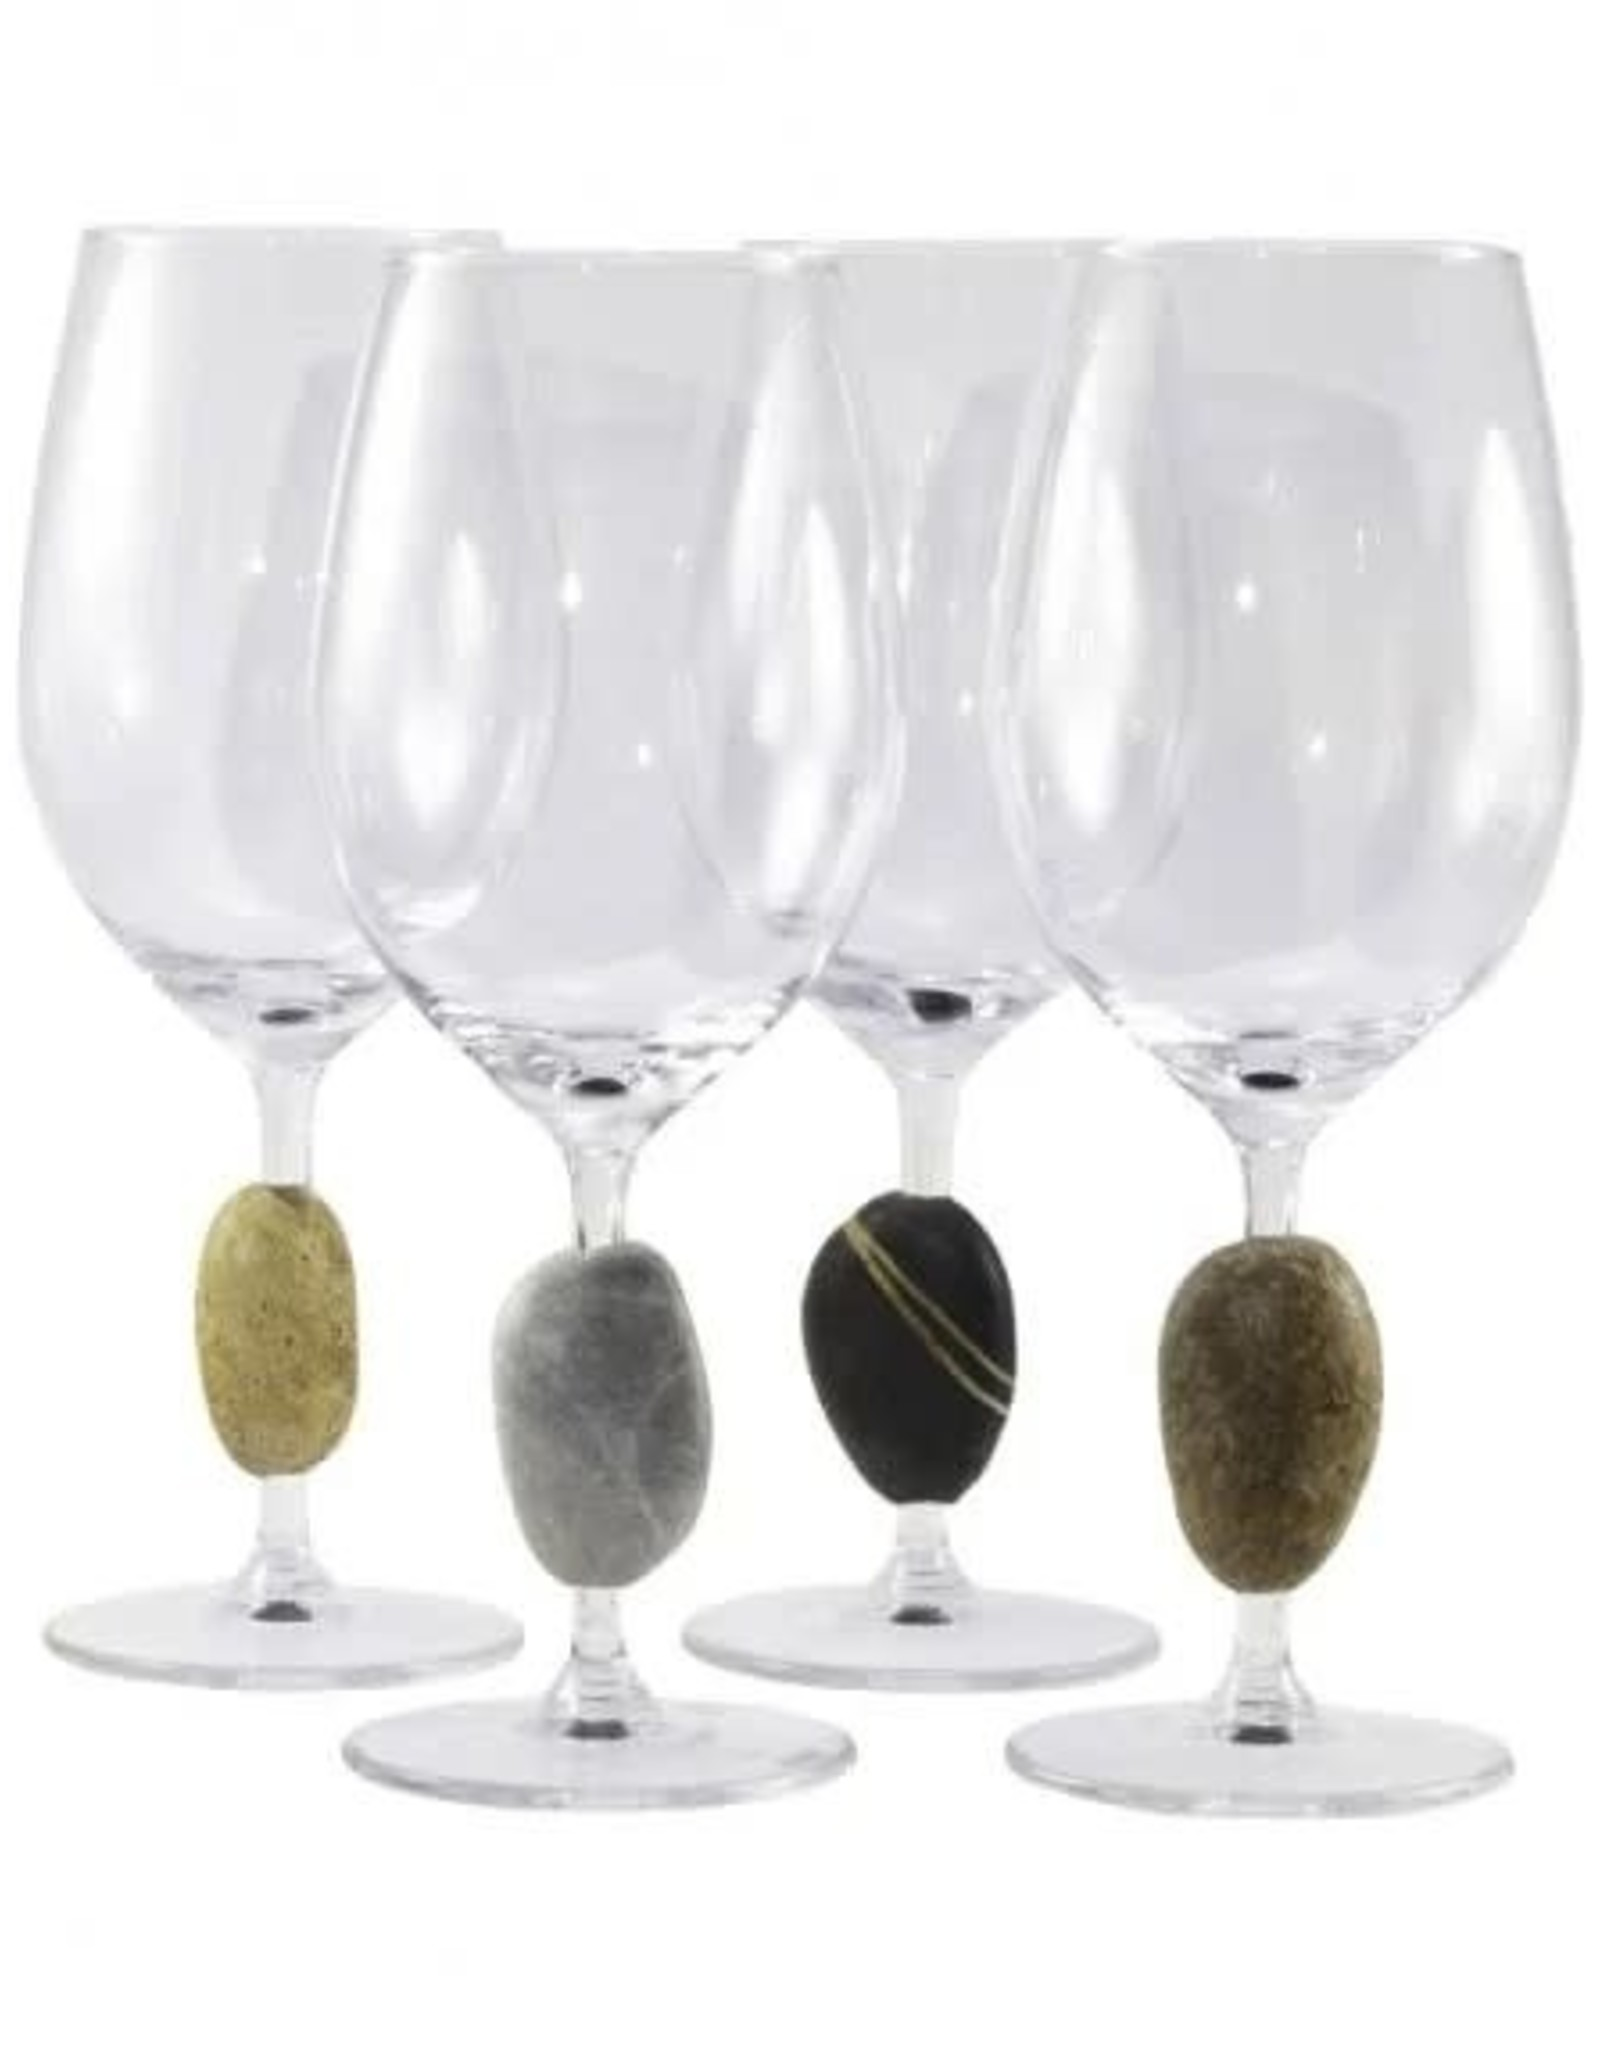 Sea Stones Inc. Touch Stone Wine Glass - Each